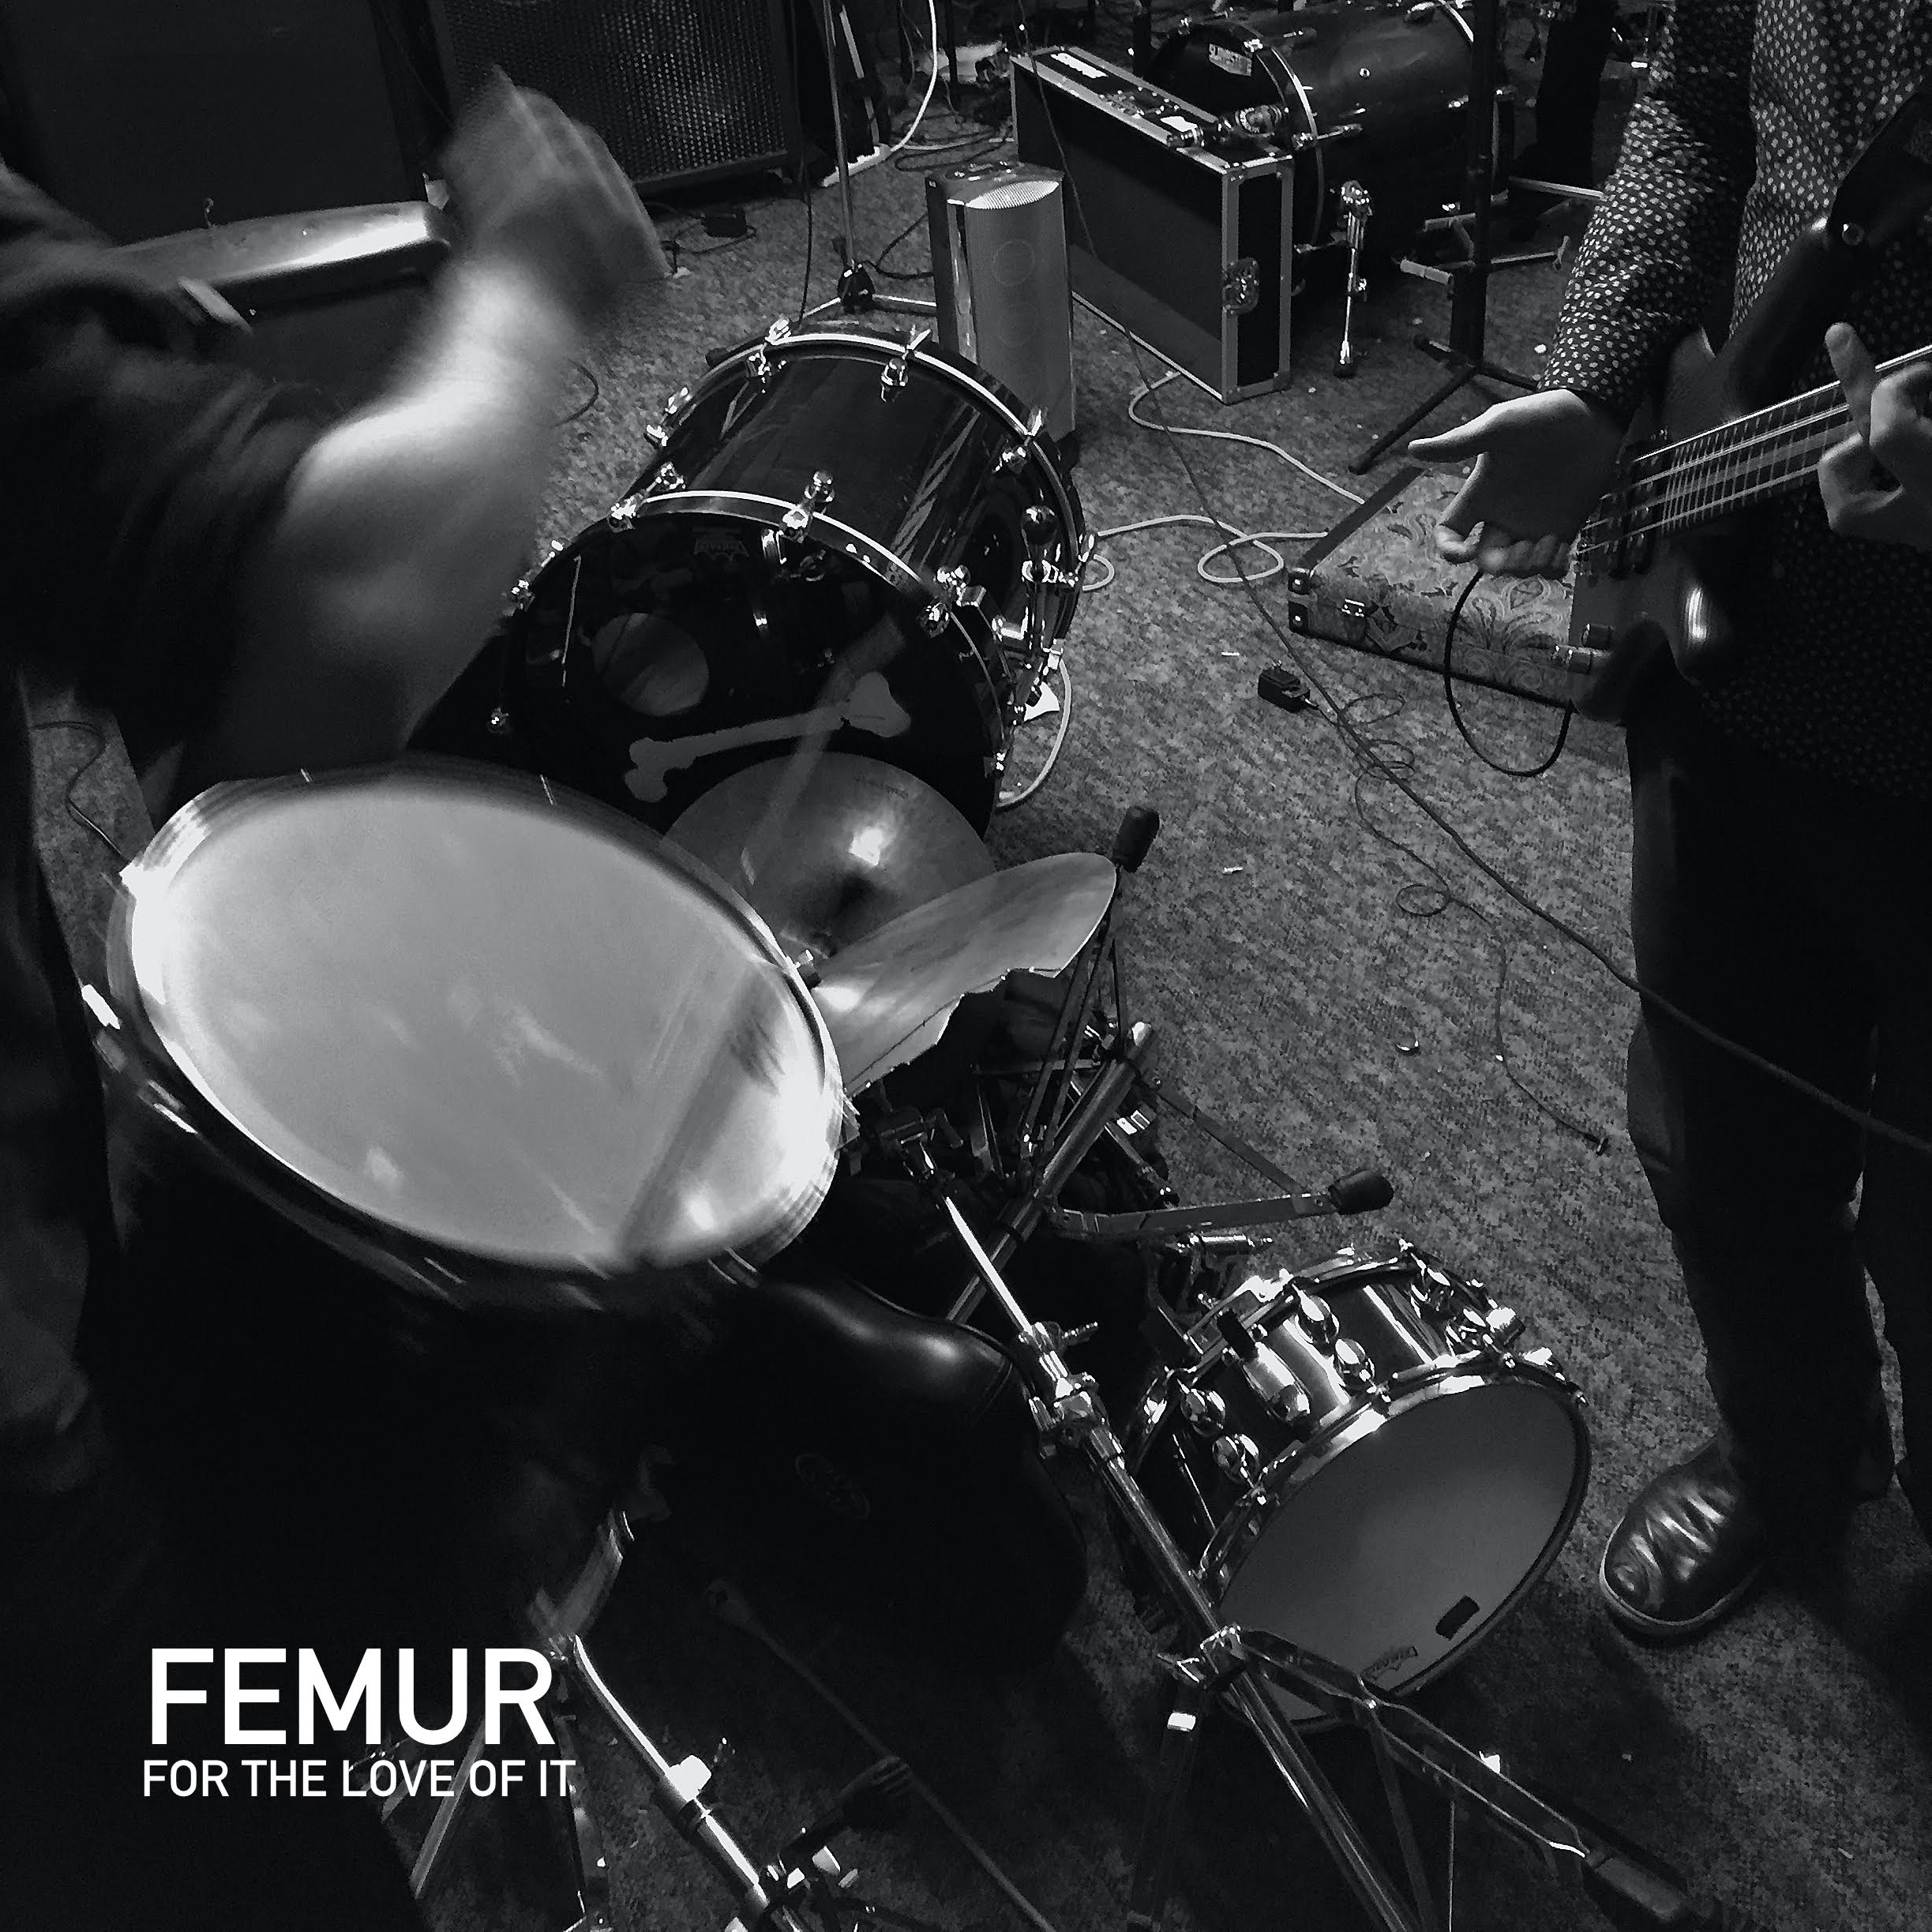 Femur's 'For the Love of It' Is Unsettling in All the Right Ways